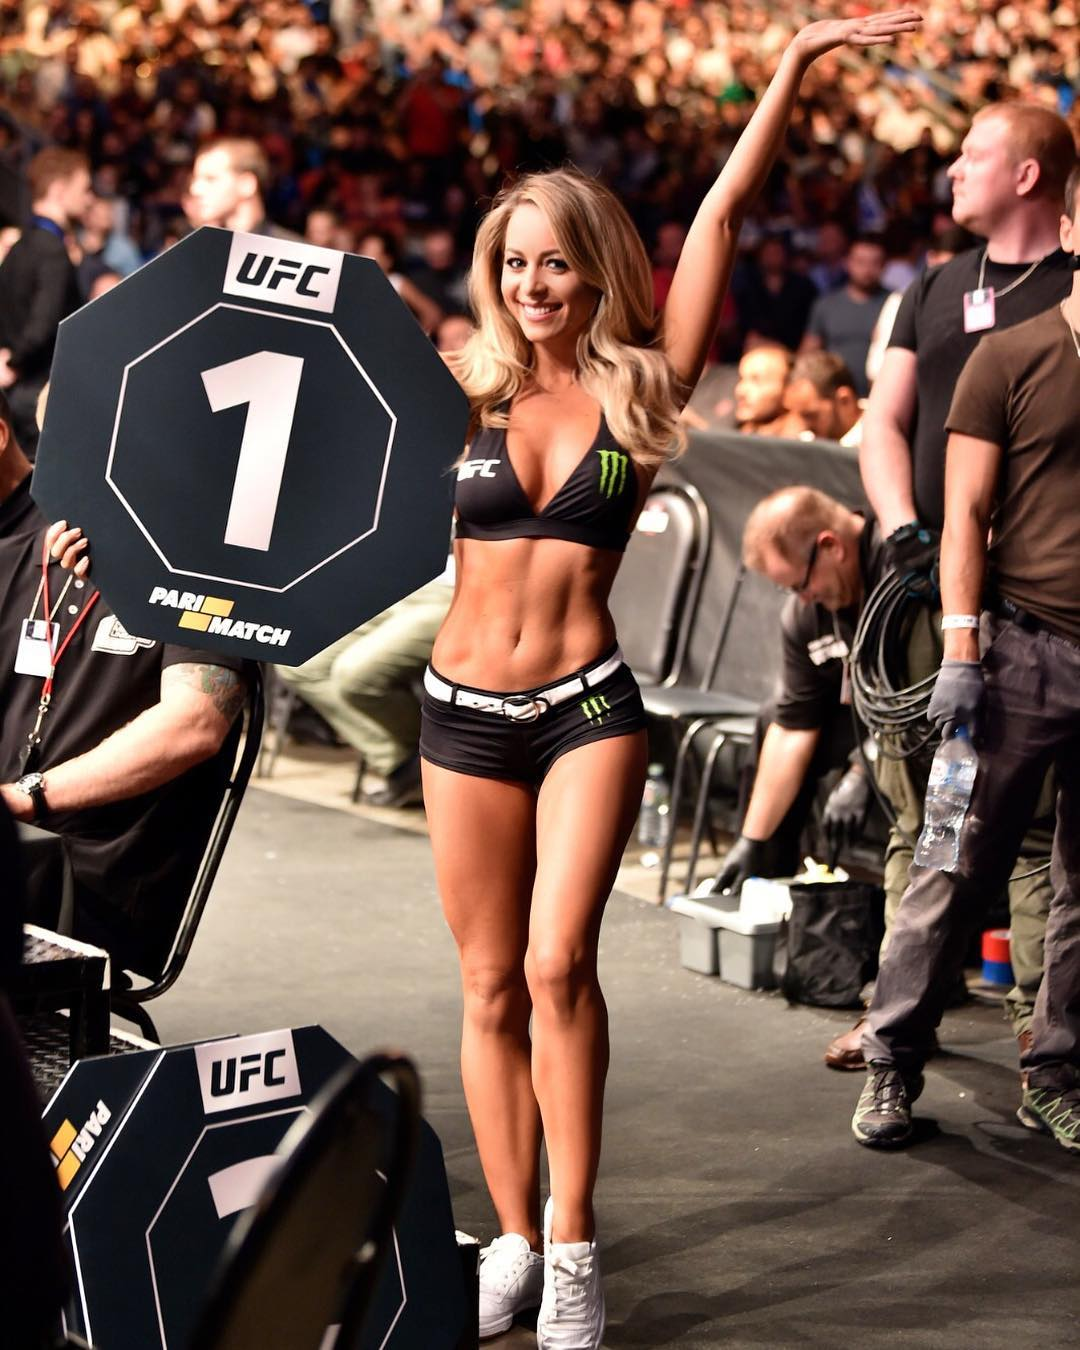 UFC Ring Card Girl Of The Year 2019